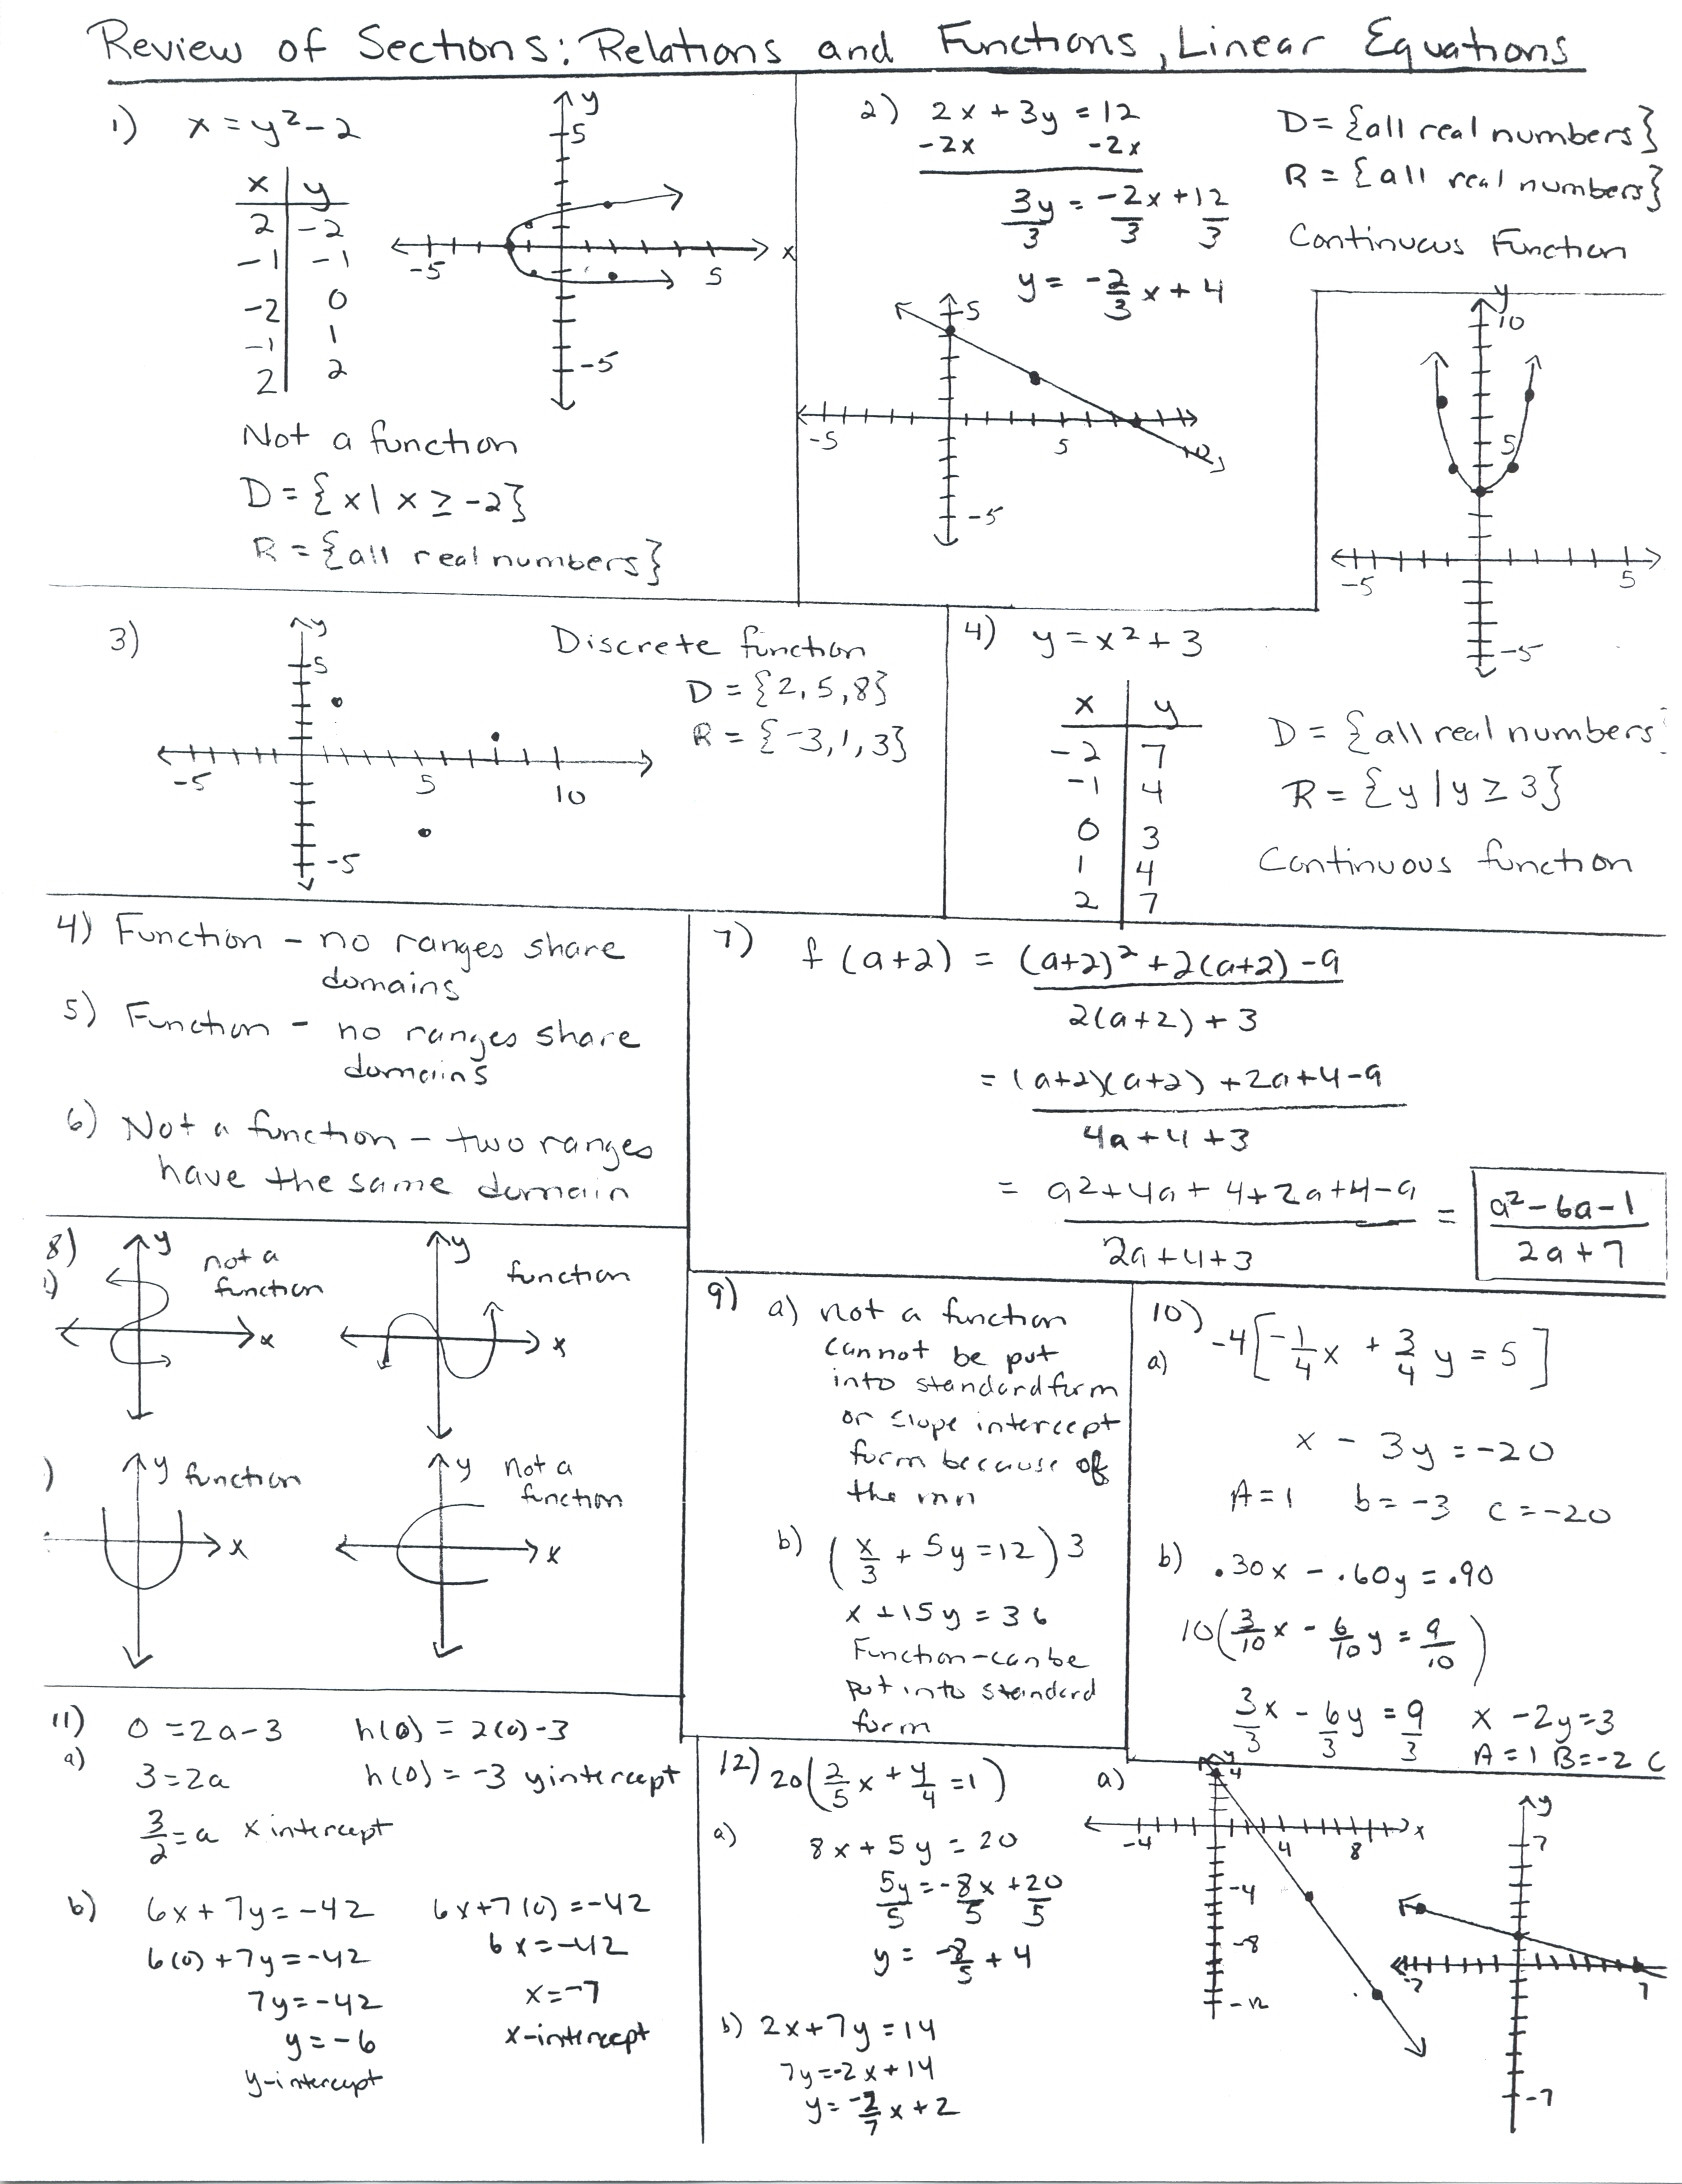 Writing Linear Equations Worksheet Answers Linear Equations Worksheet Packet